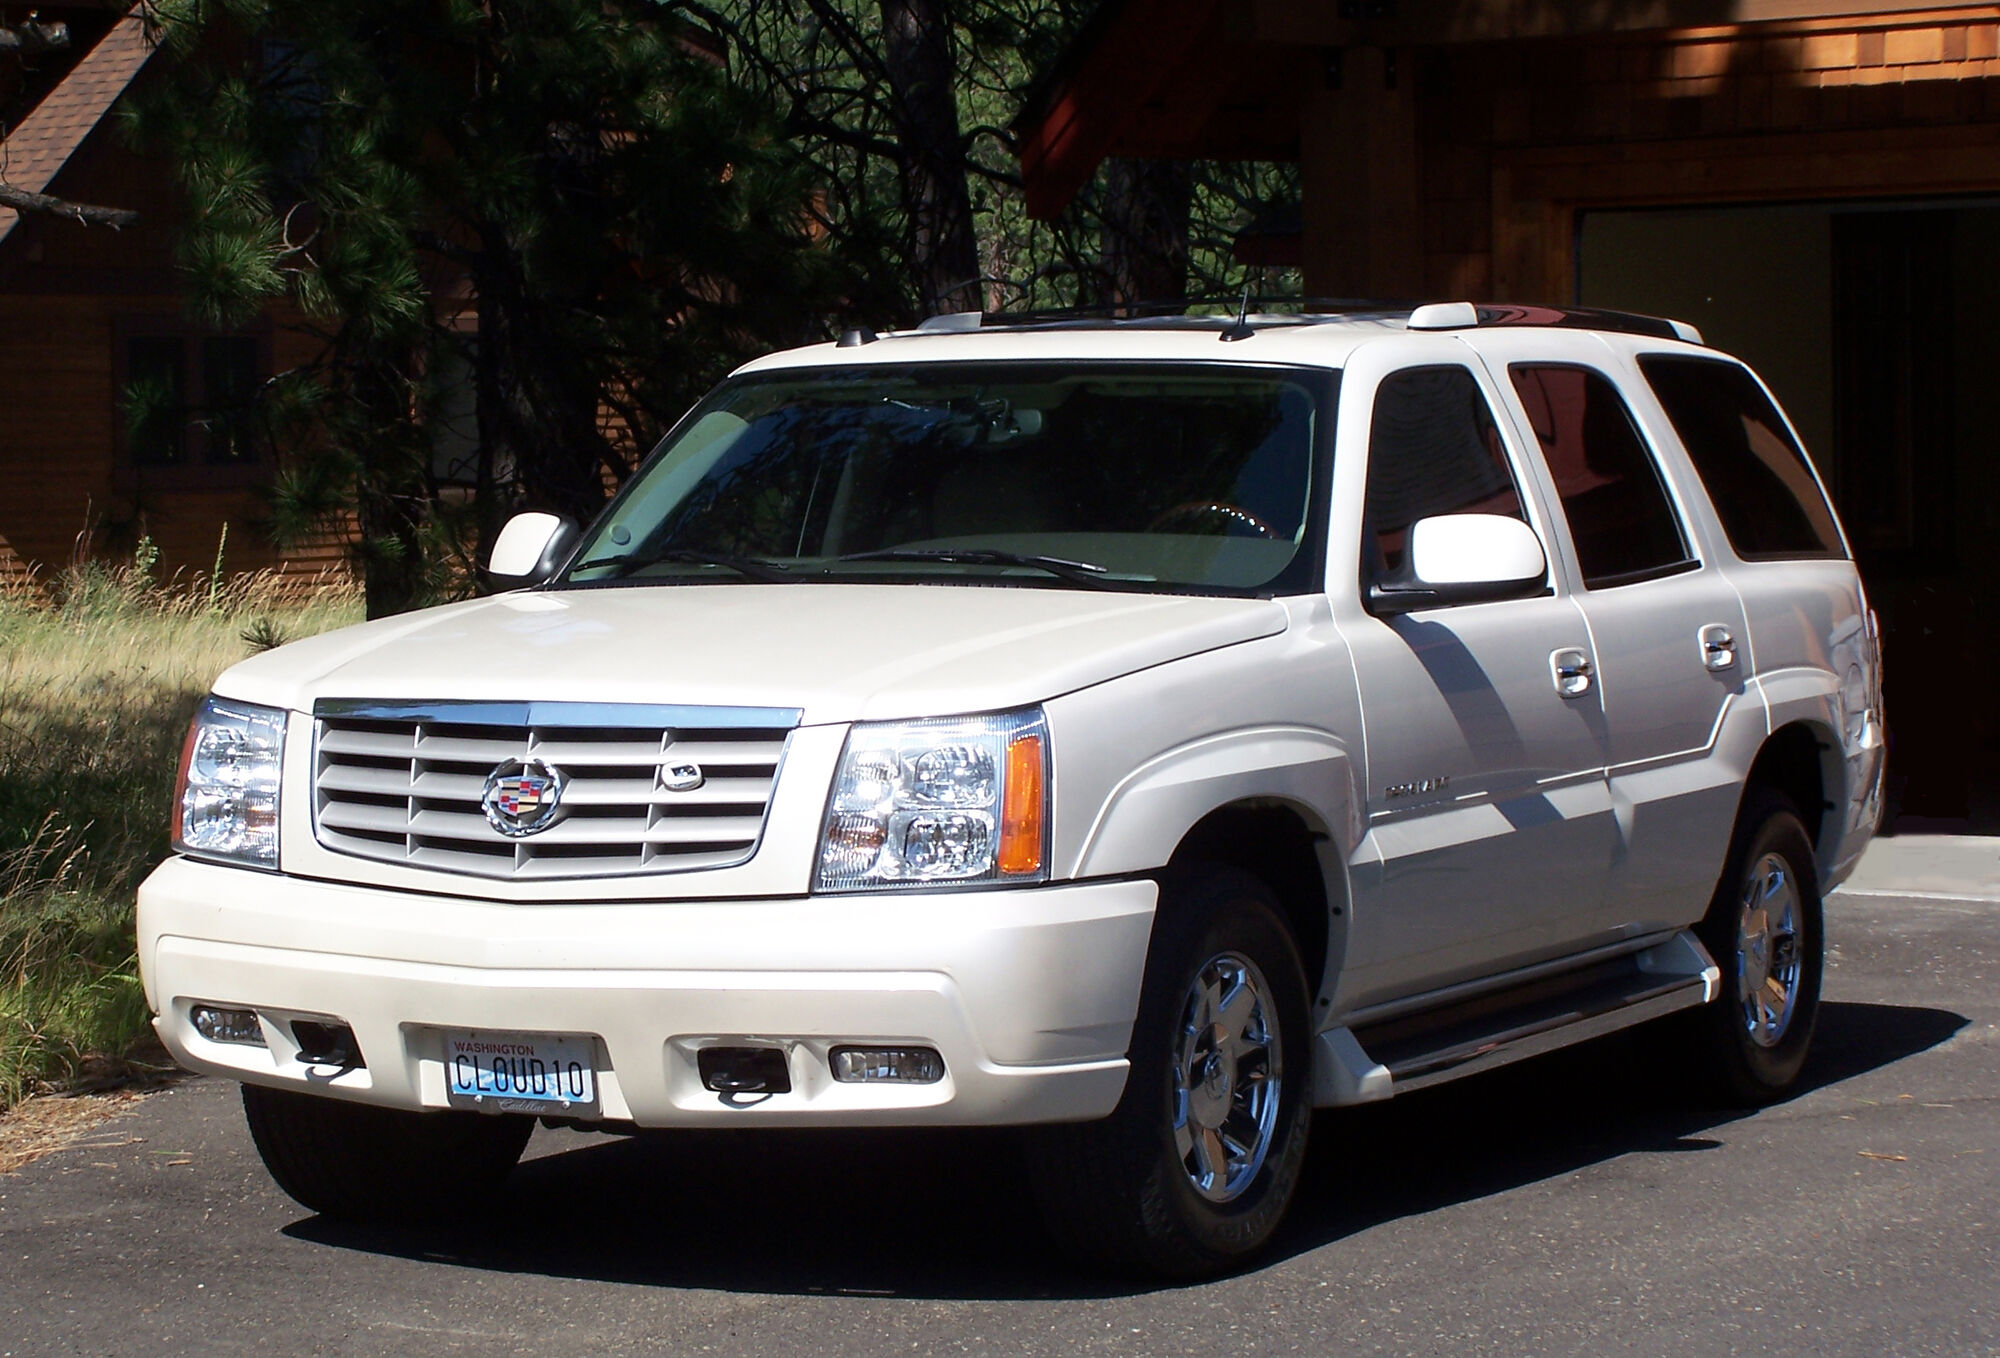 Cadillac escalade tractor construction plant wiki fandom powered by wikia